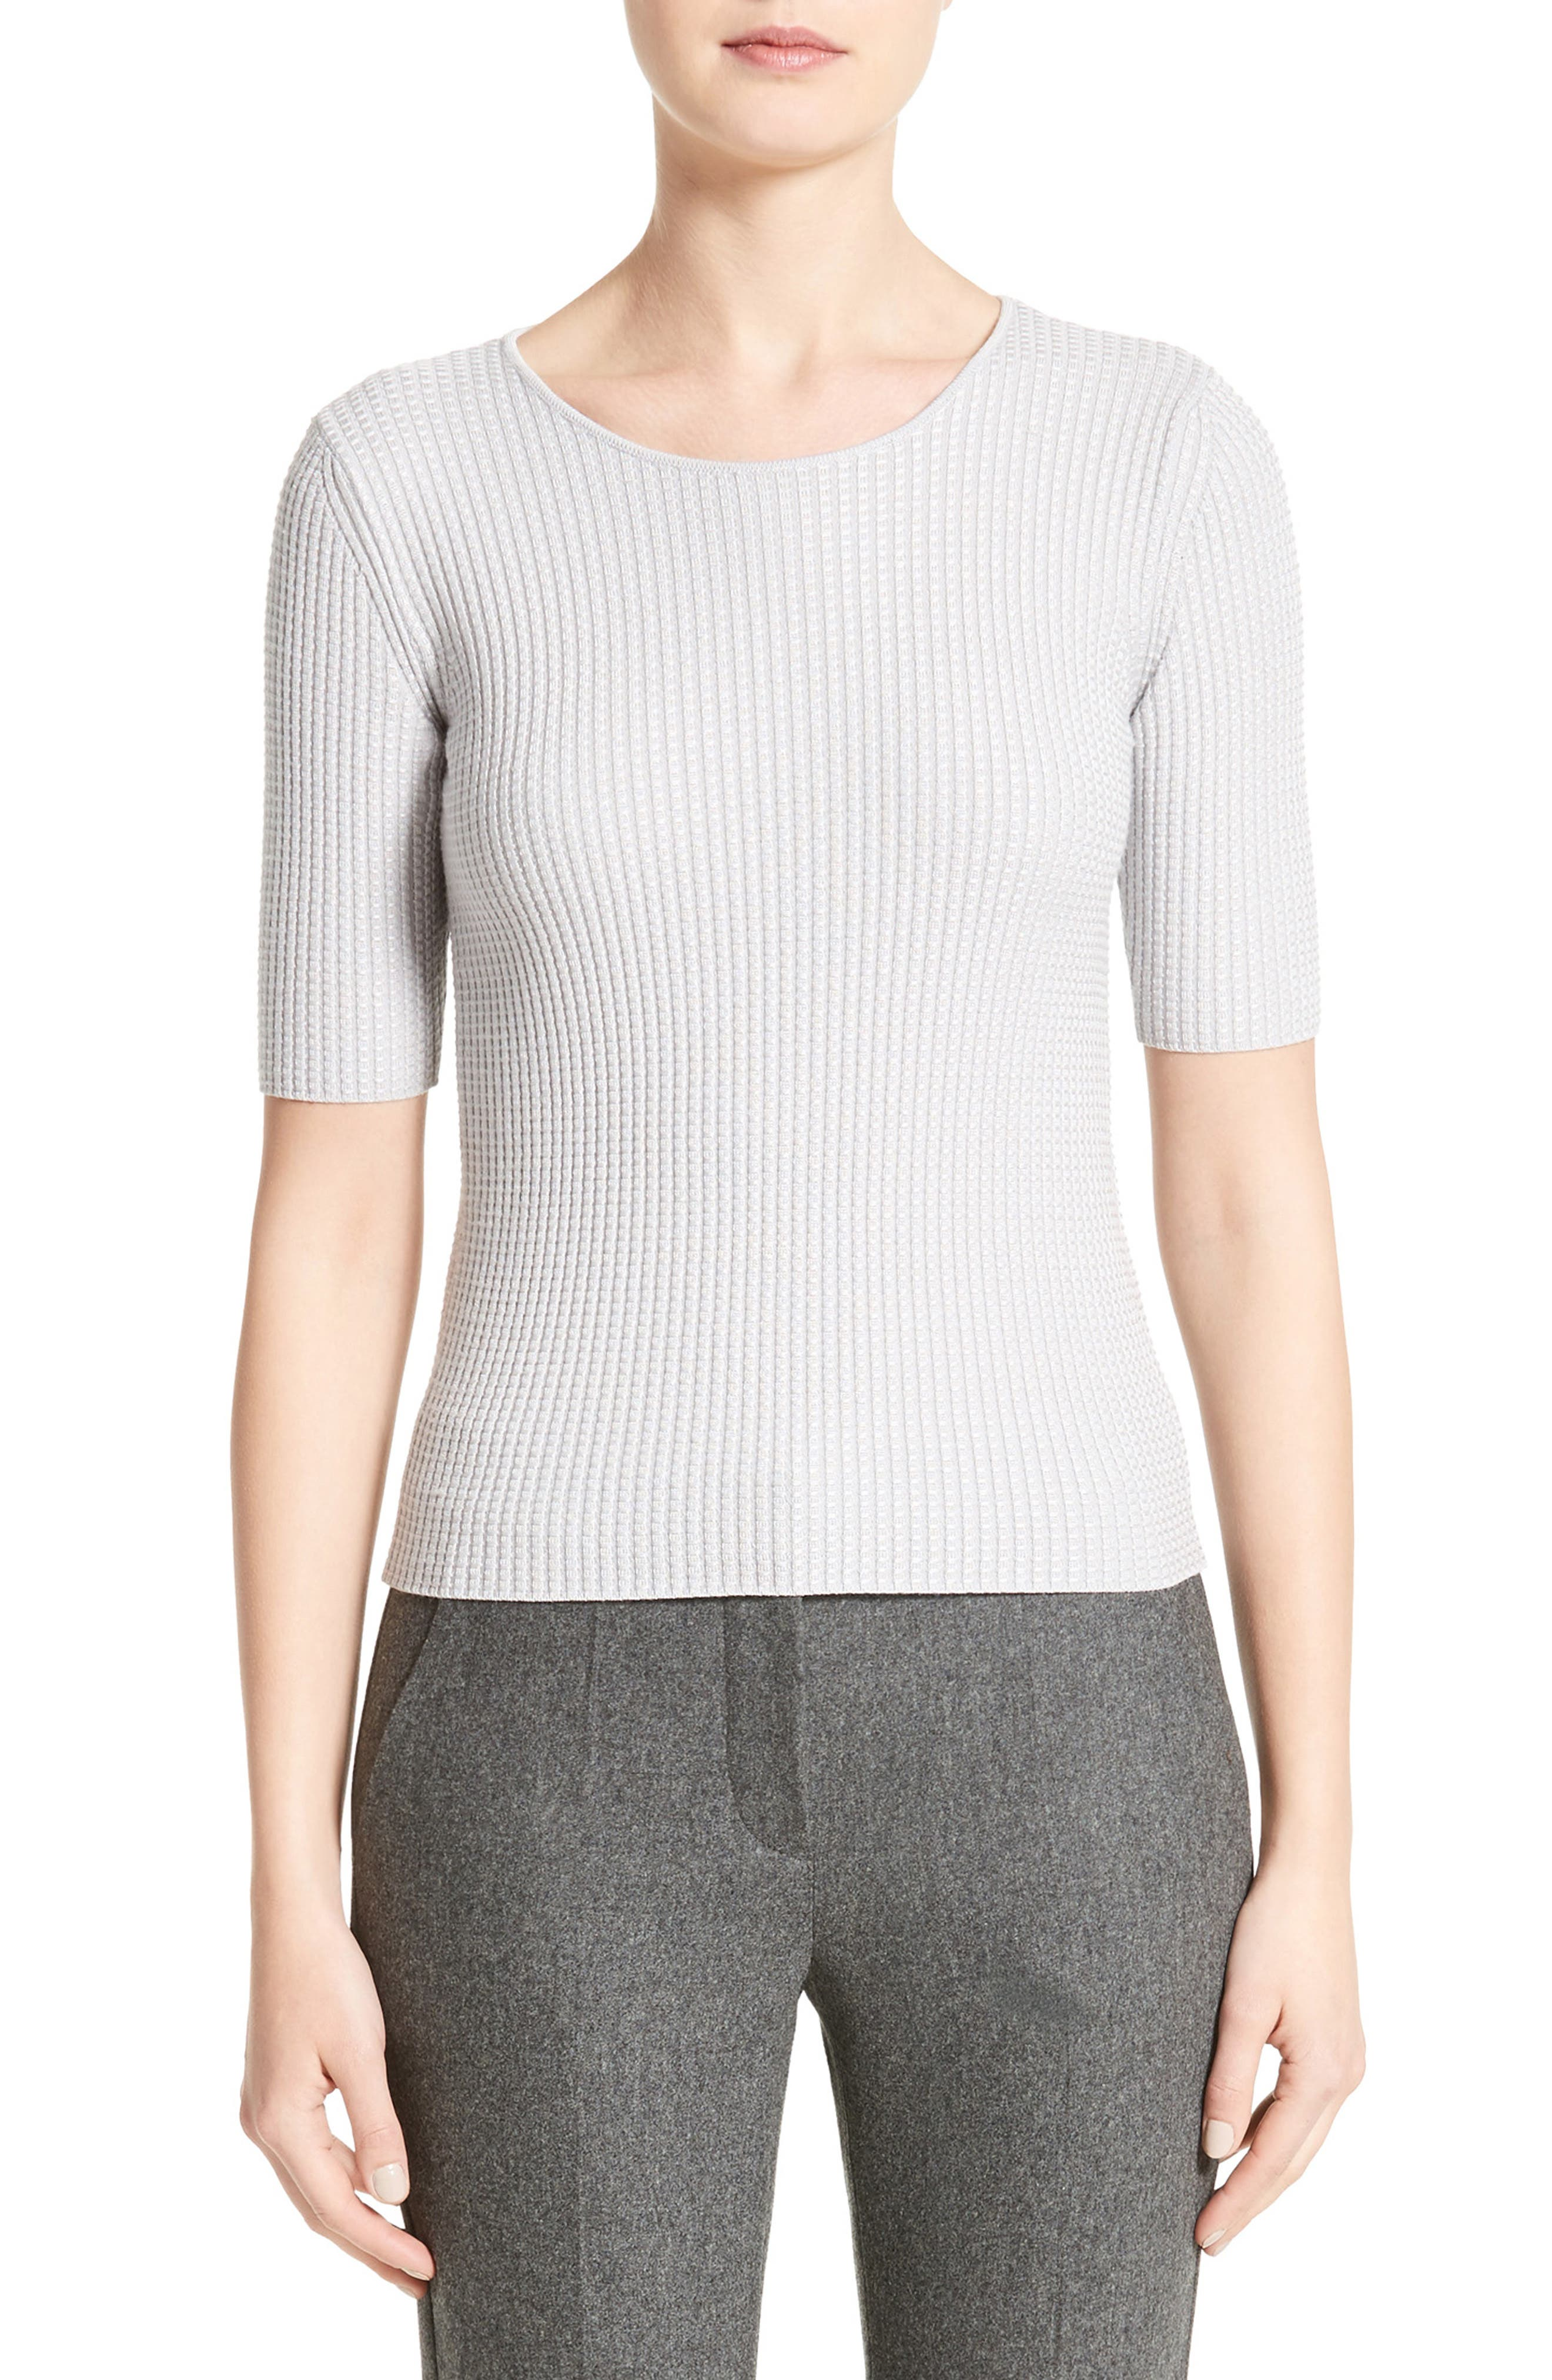 Alternate Image 1 Selected - Armani Collezioni Stretch Wool Blend Top